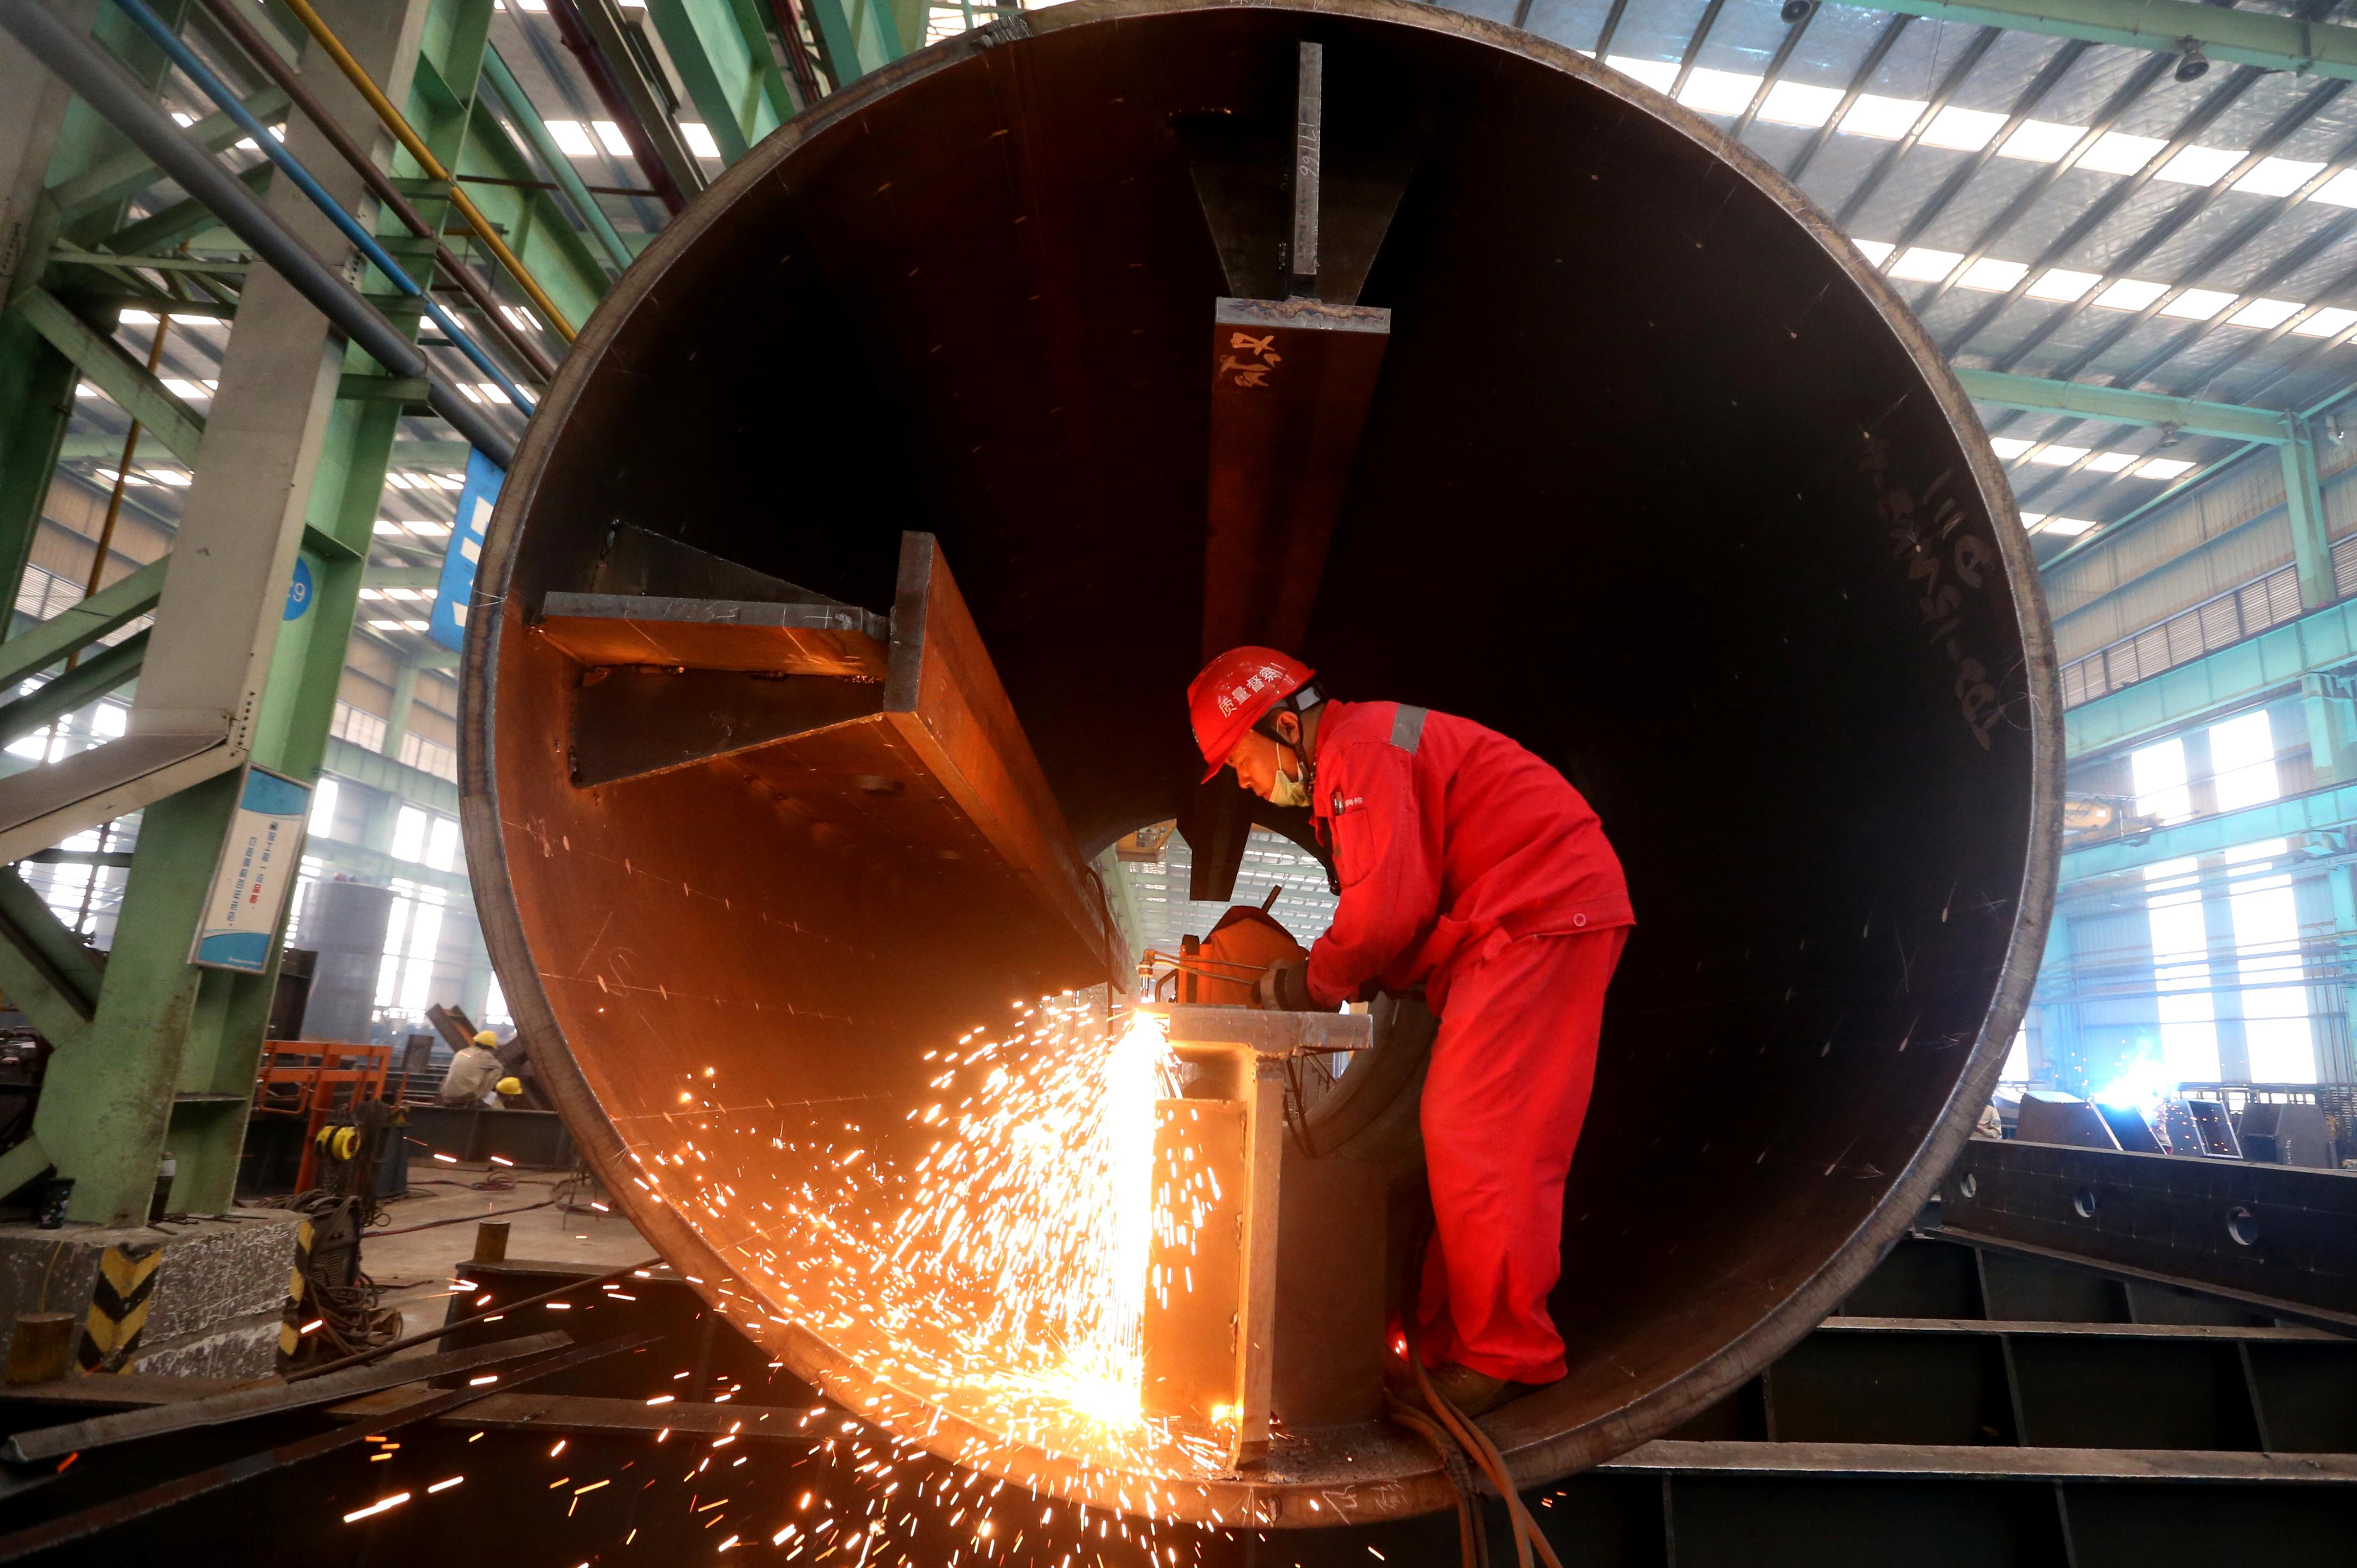 Column: Steel and base metals express divergent views on China